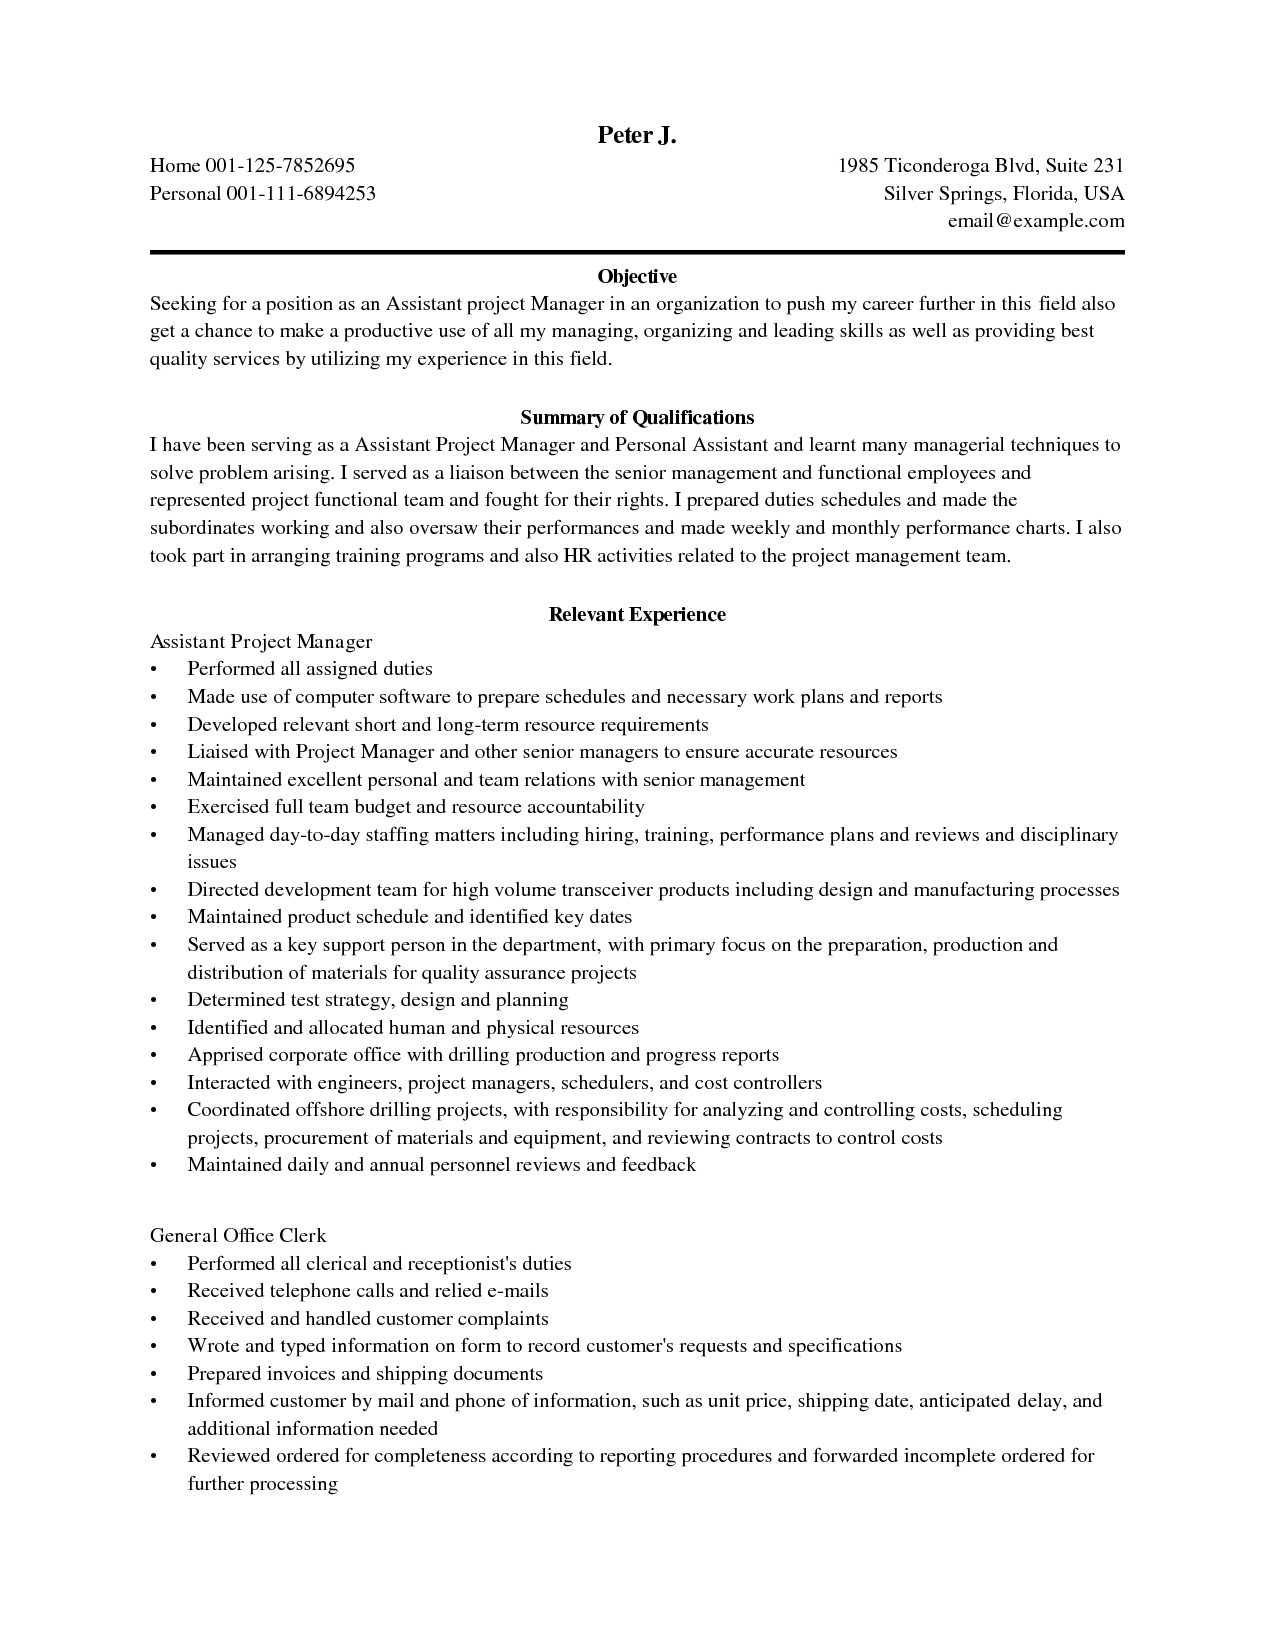 Great Career Objective Examples Information Technology Printable Resume Job Large  Size And Project Management Career Objective